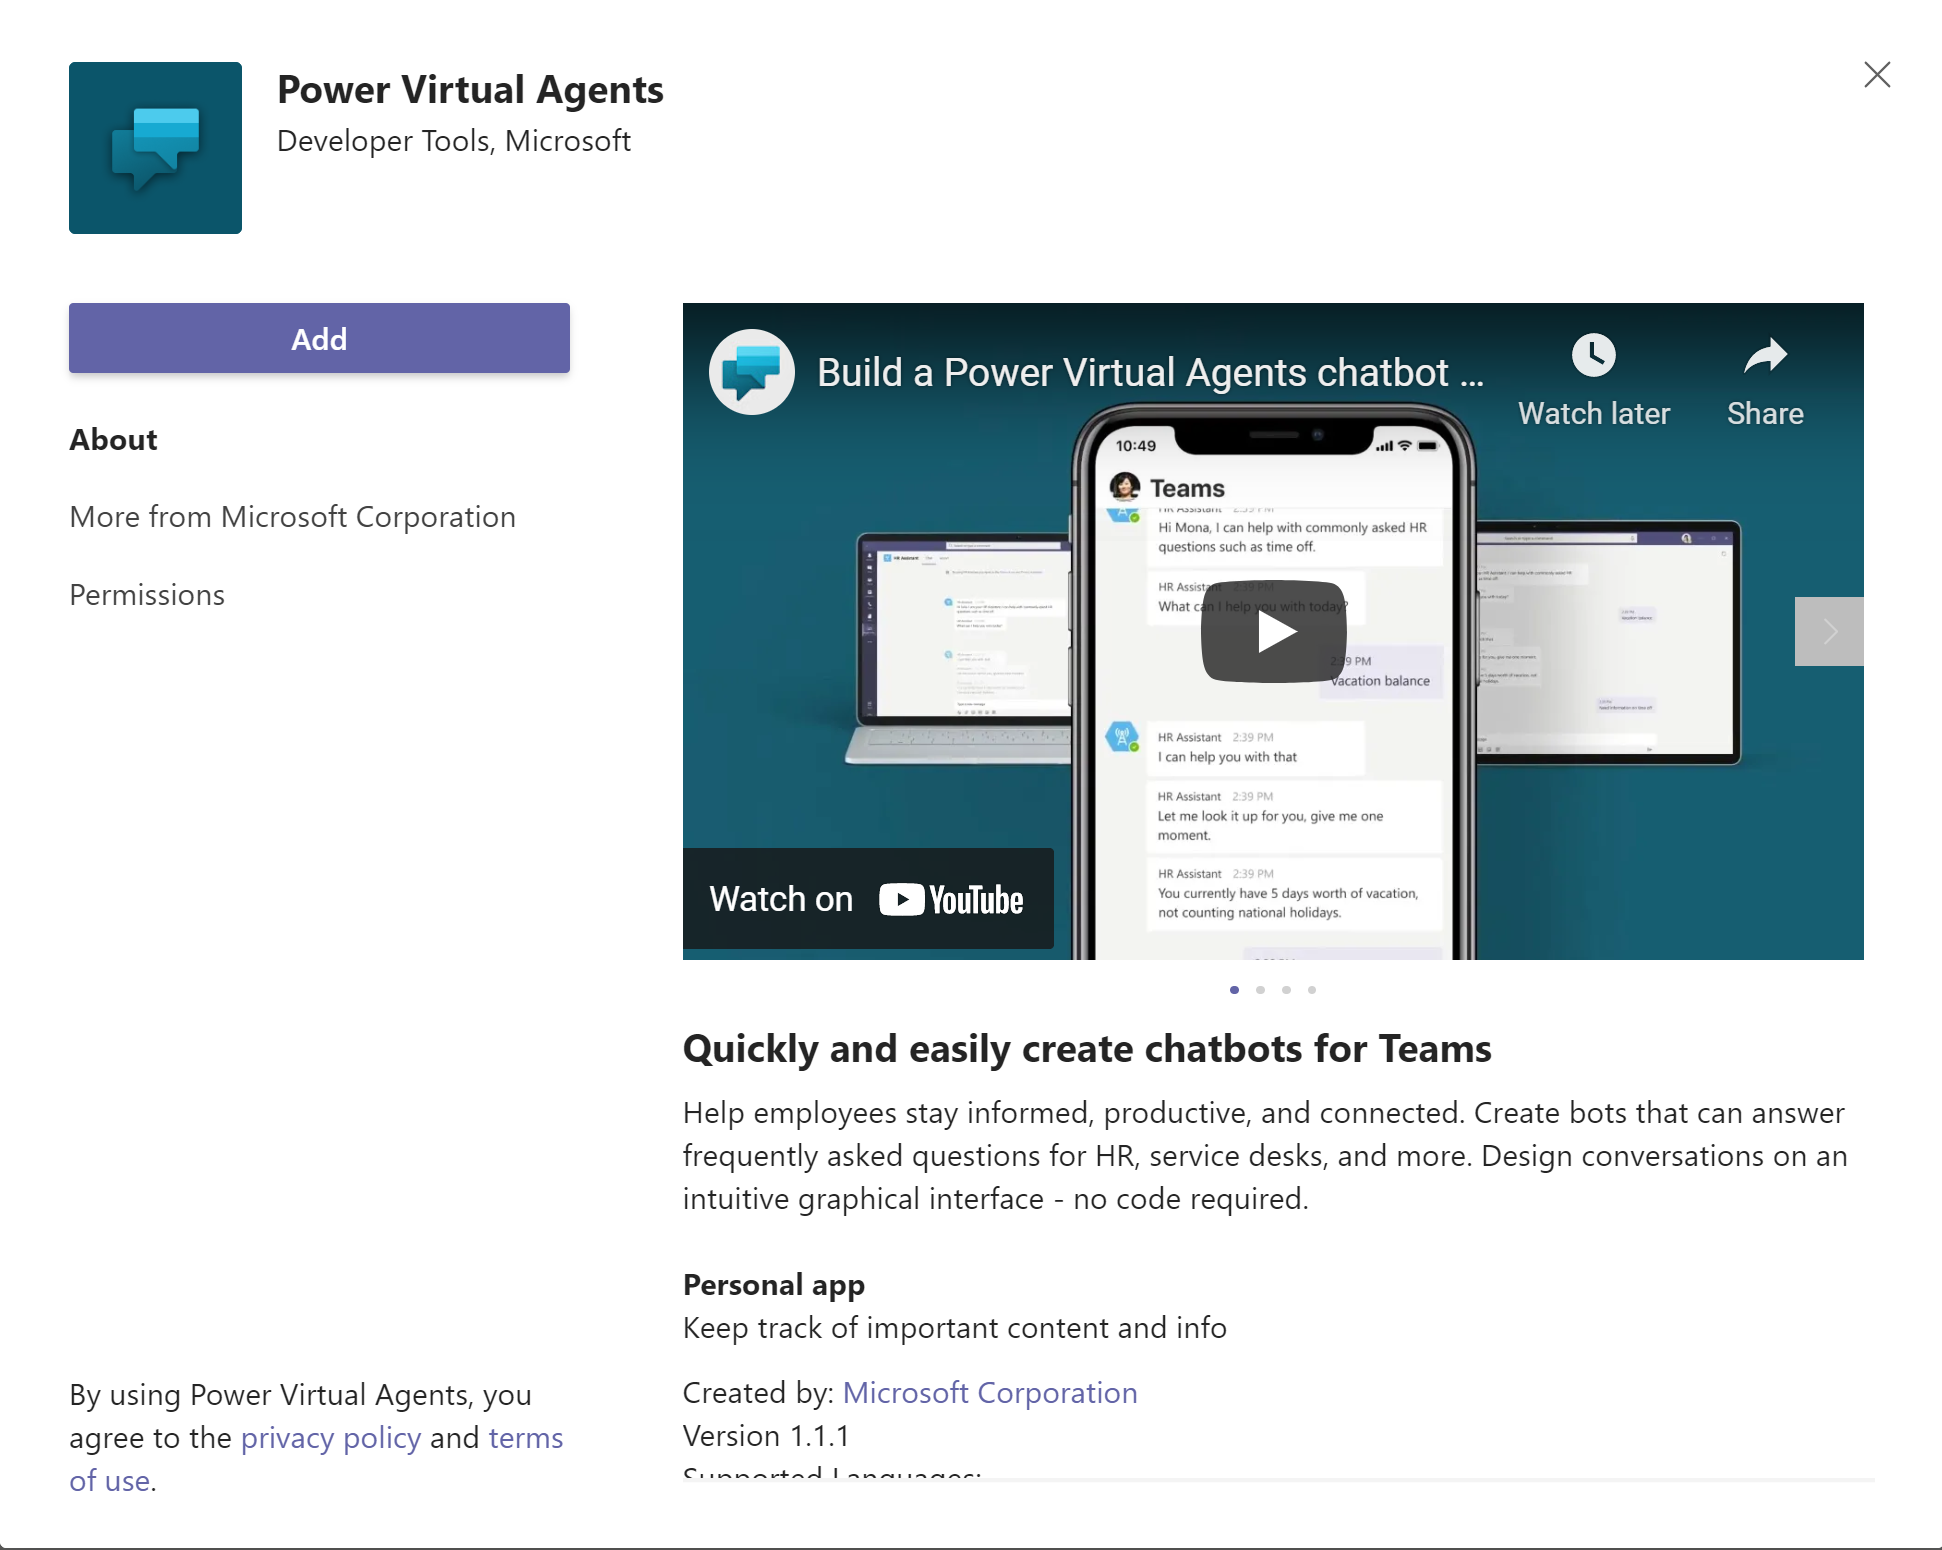 Add Power Virtual Agents to Teams